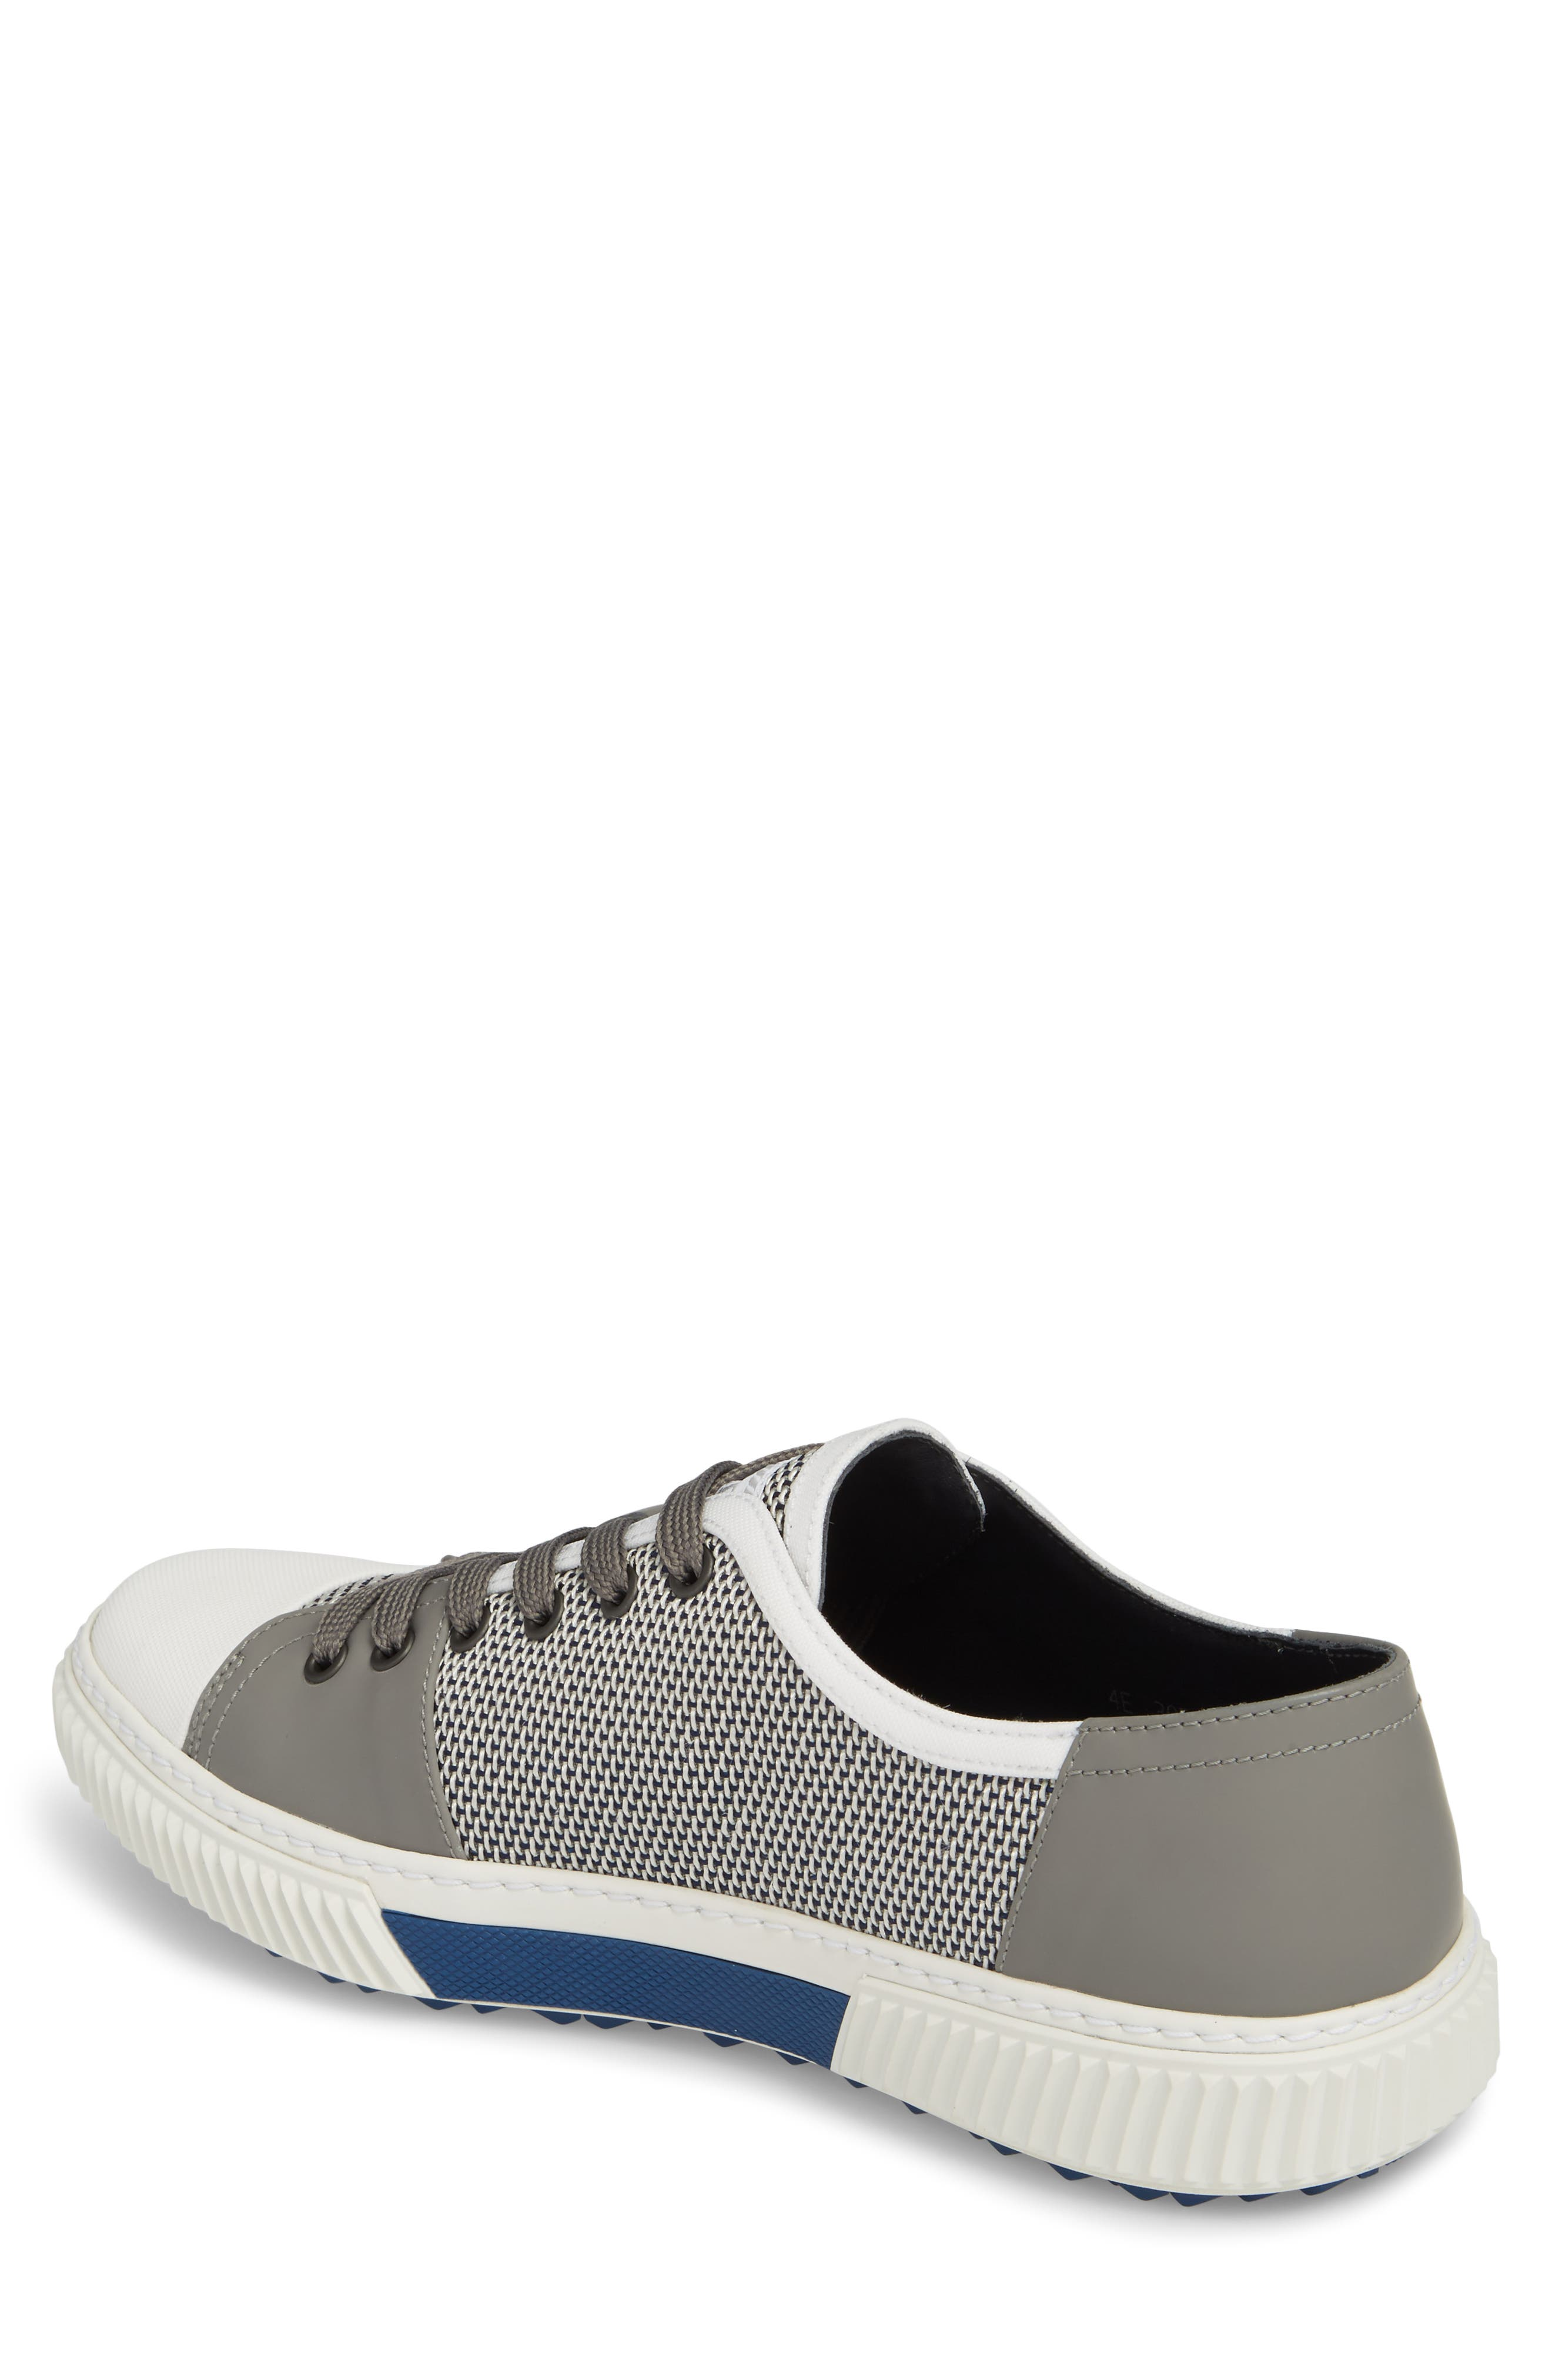 Linea Rossa Low-Top Sneaker,                             Alternate thumbnail 2, color,                             122